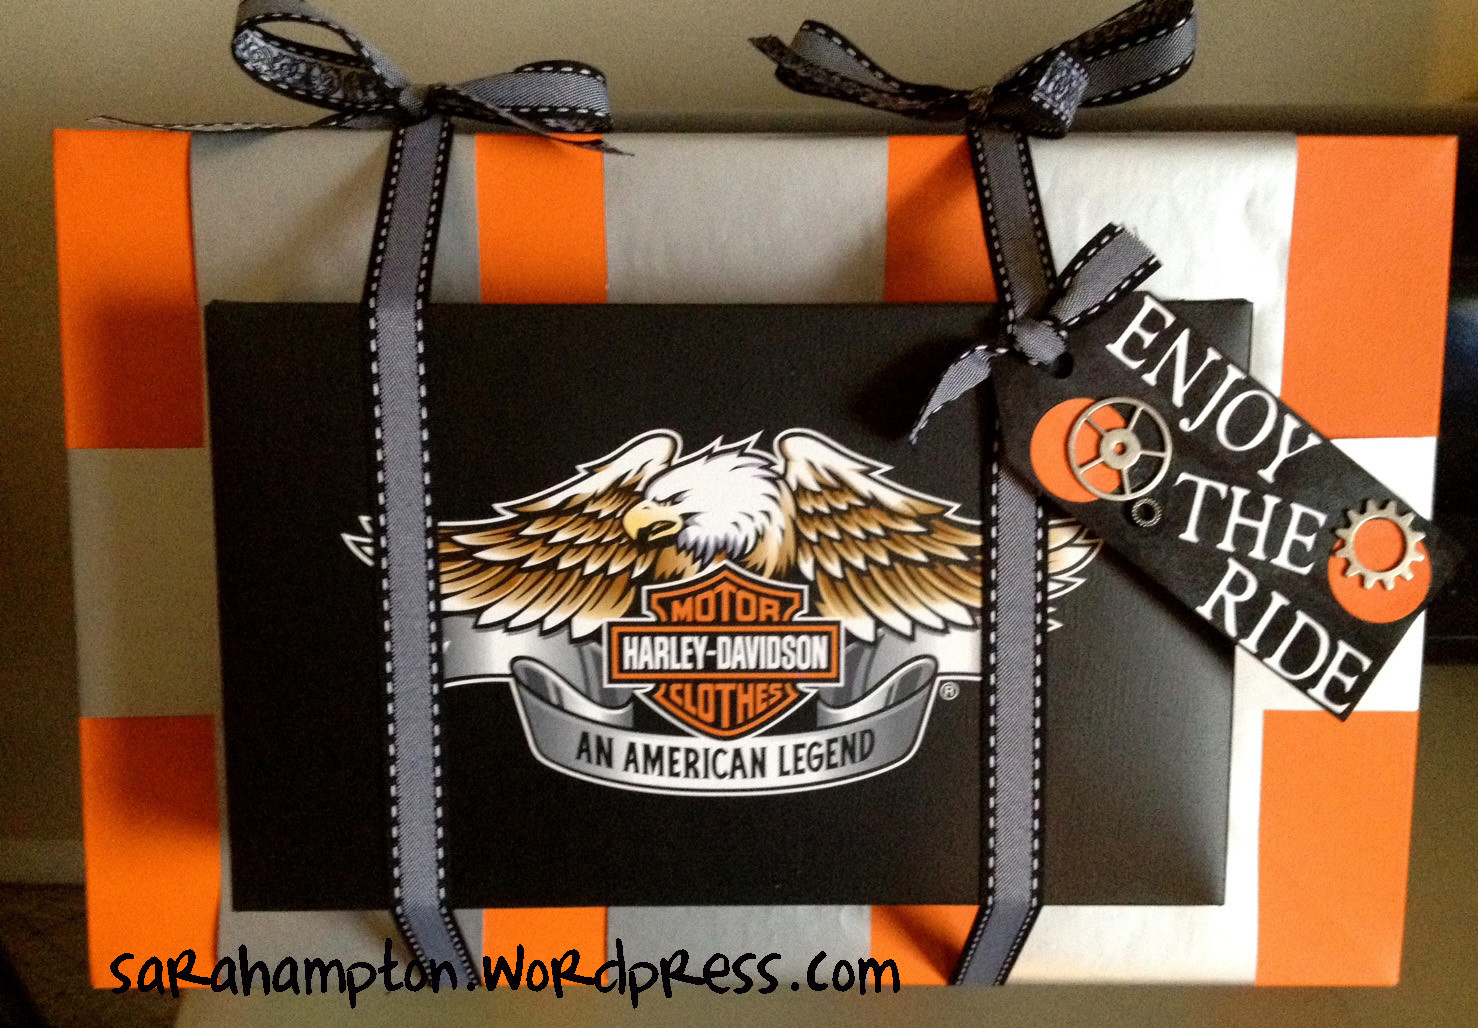 Best ideas about Harley Davidson Gift Ideas . Save or Pin Harley Davidson Now.